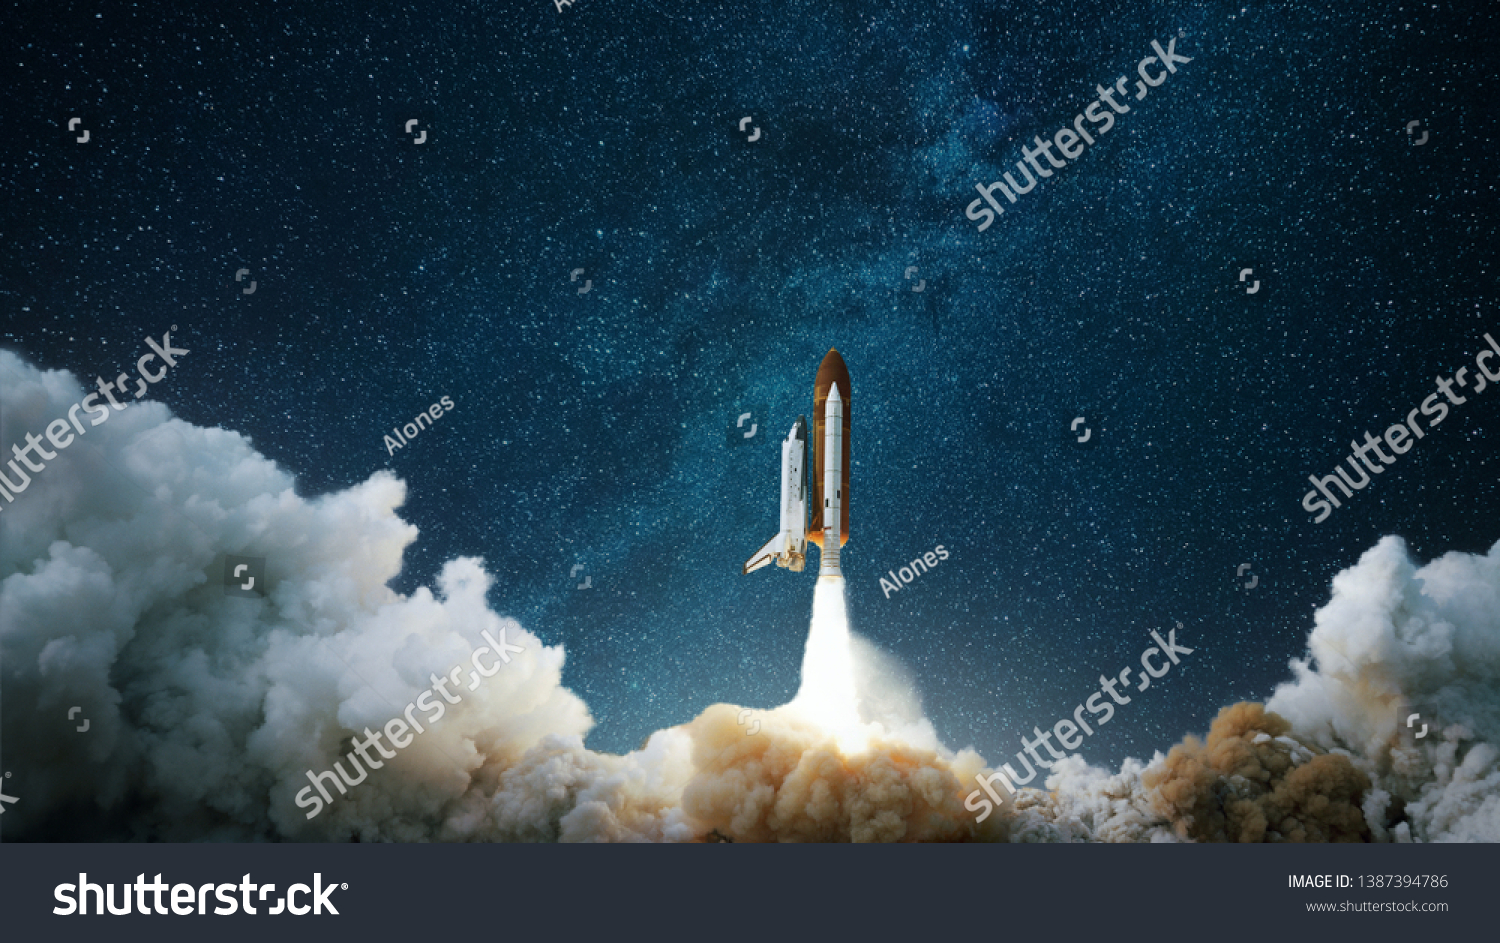 Spaceship takes off into the starry sky. Rocket starts into space. Concept #1387394786